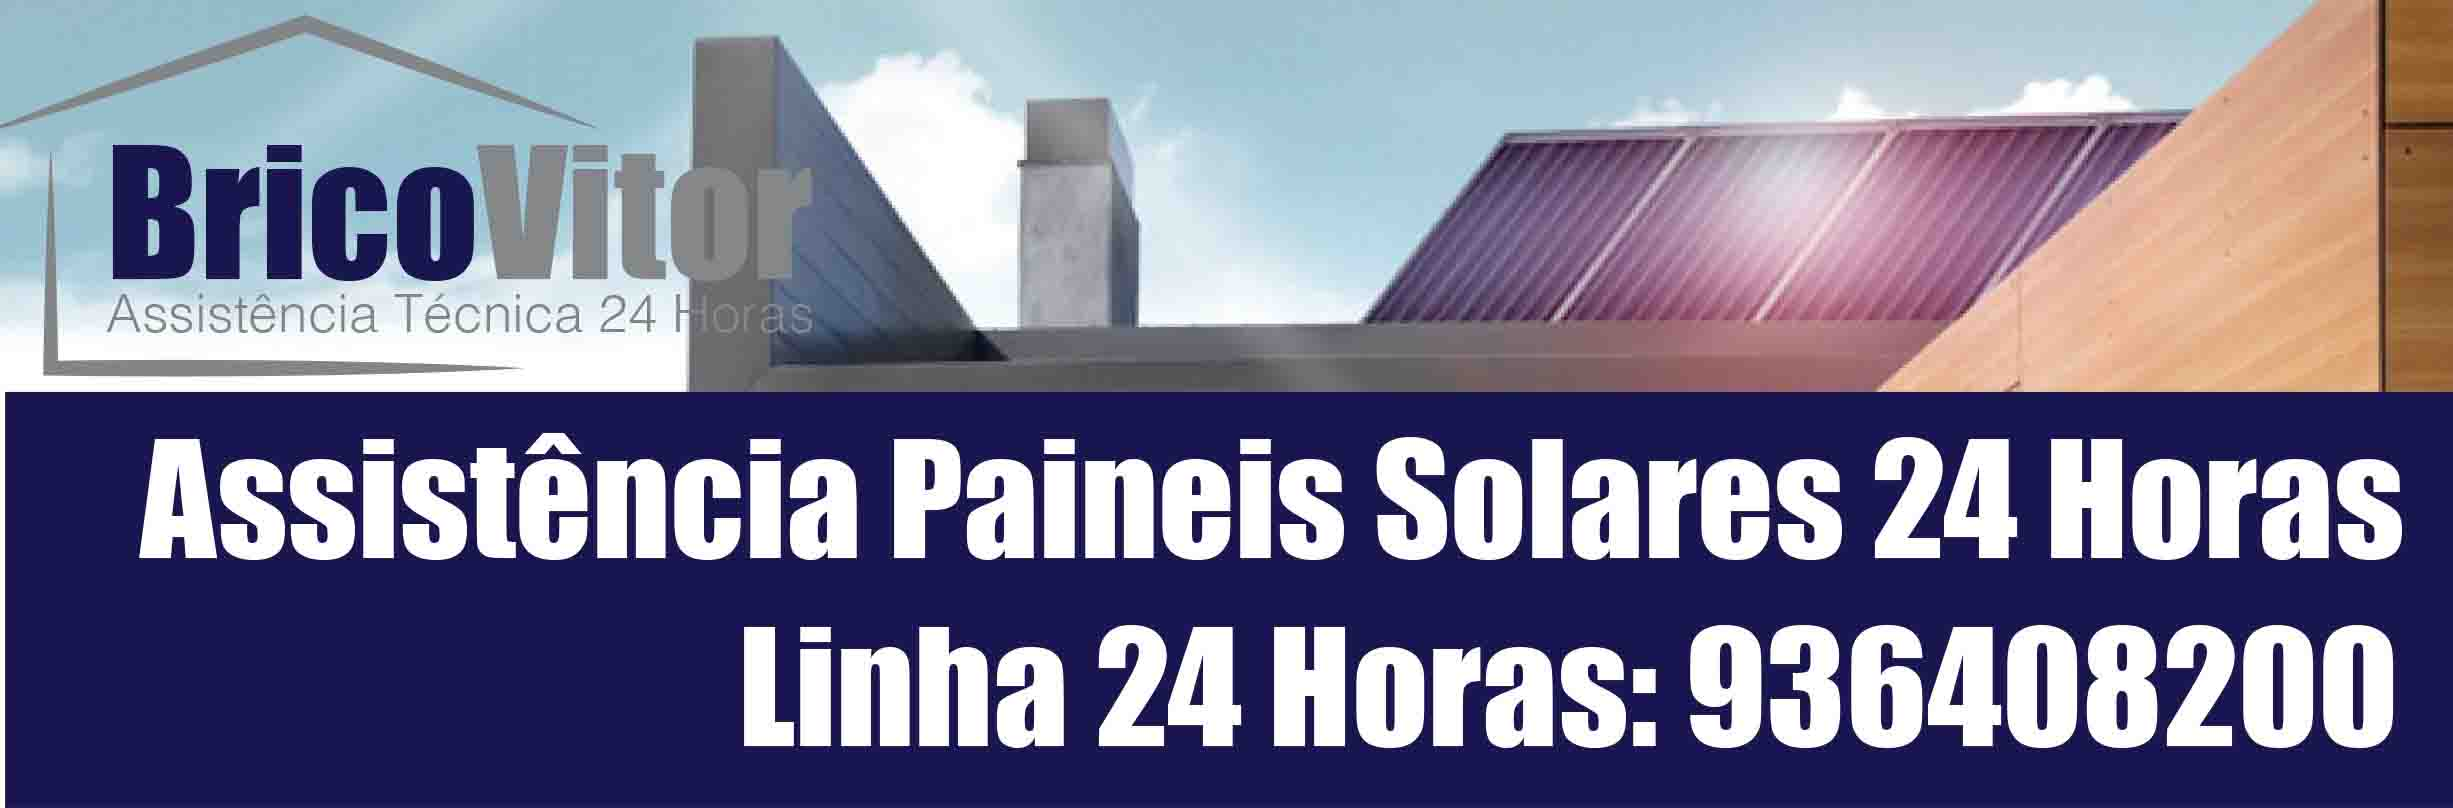 Painéis Solares Sequeiró